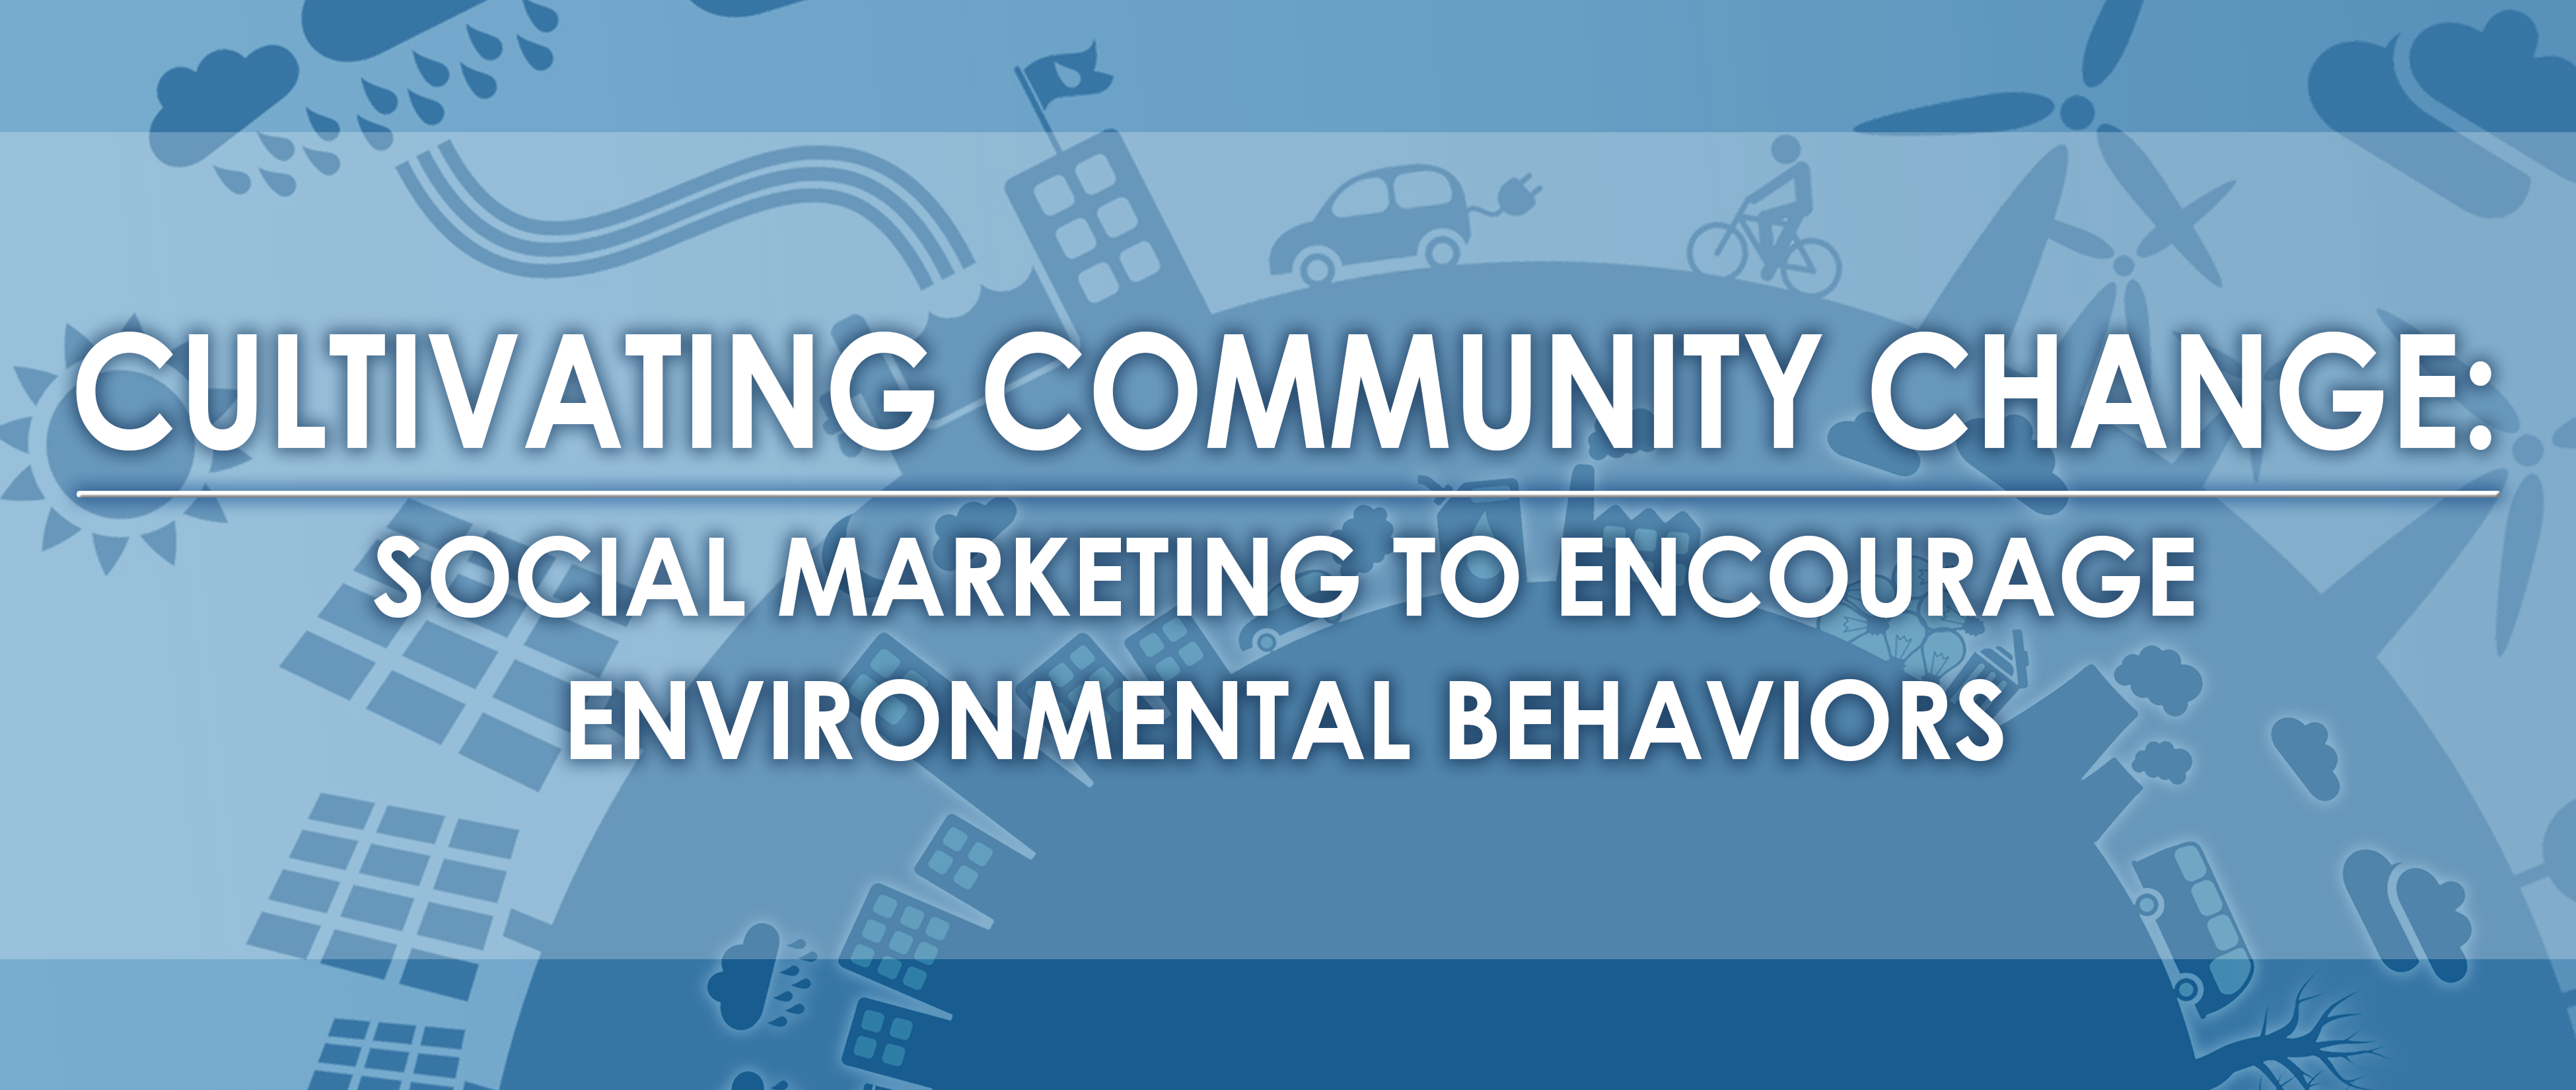 Cultivating community change: Social marketing to encourage environmental behaviors